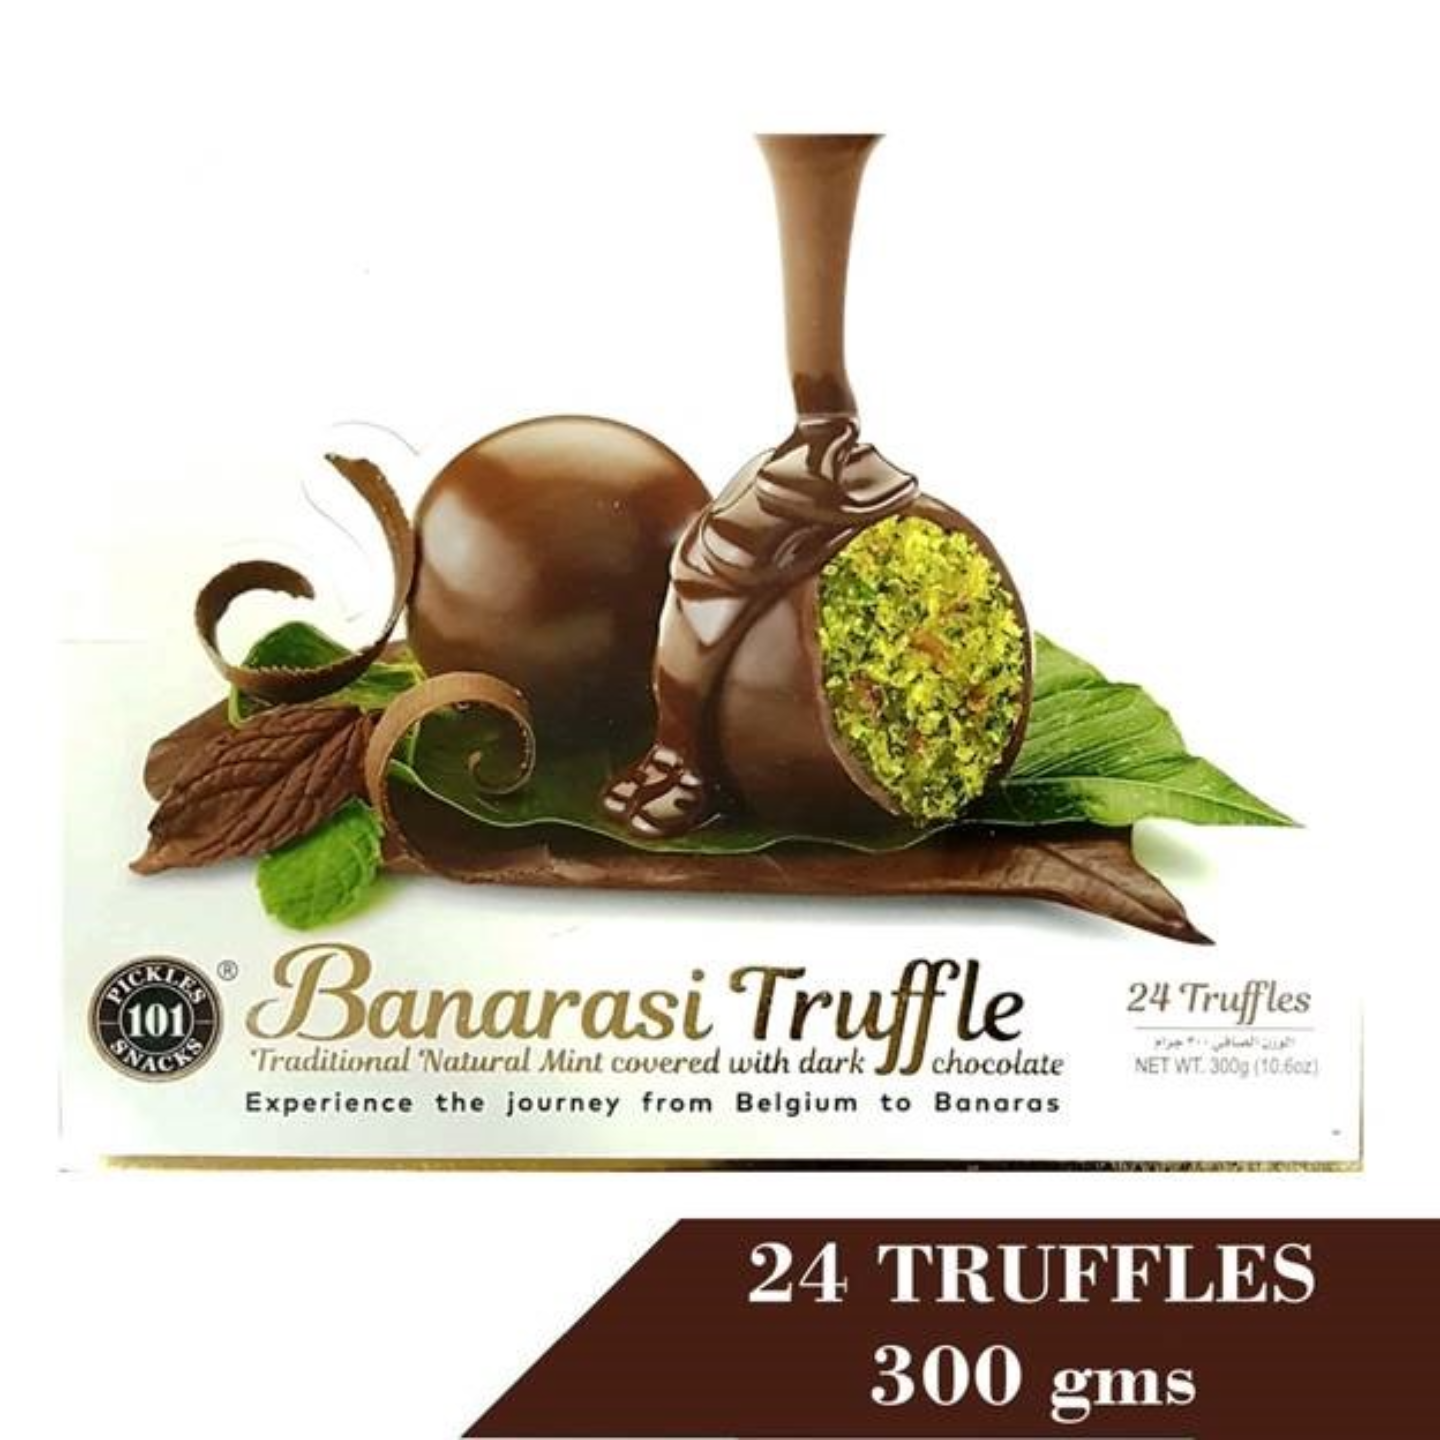 Banarasi Truffle Natural Mint Covered With Dark Chocolate 300G